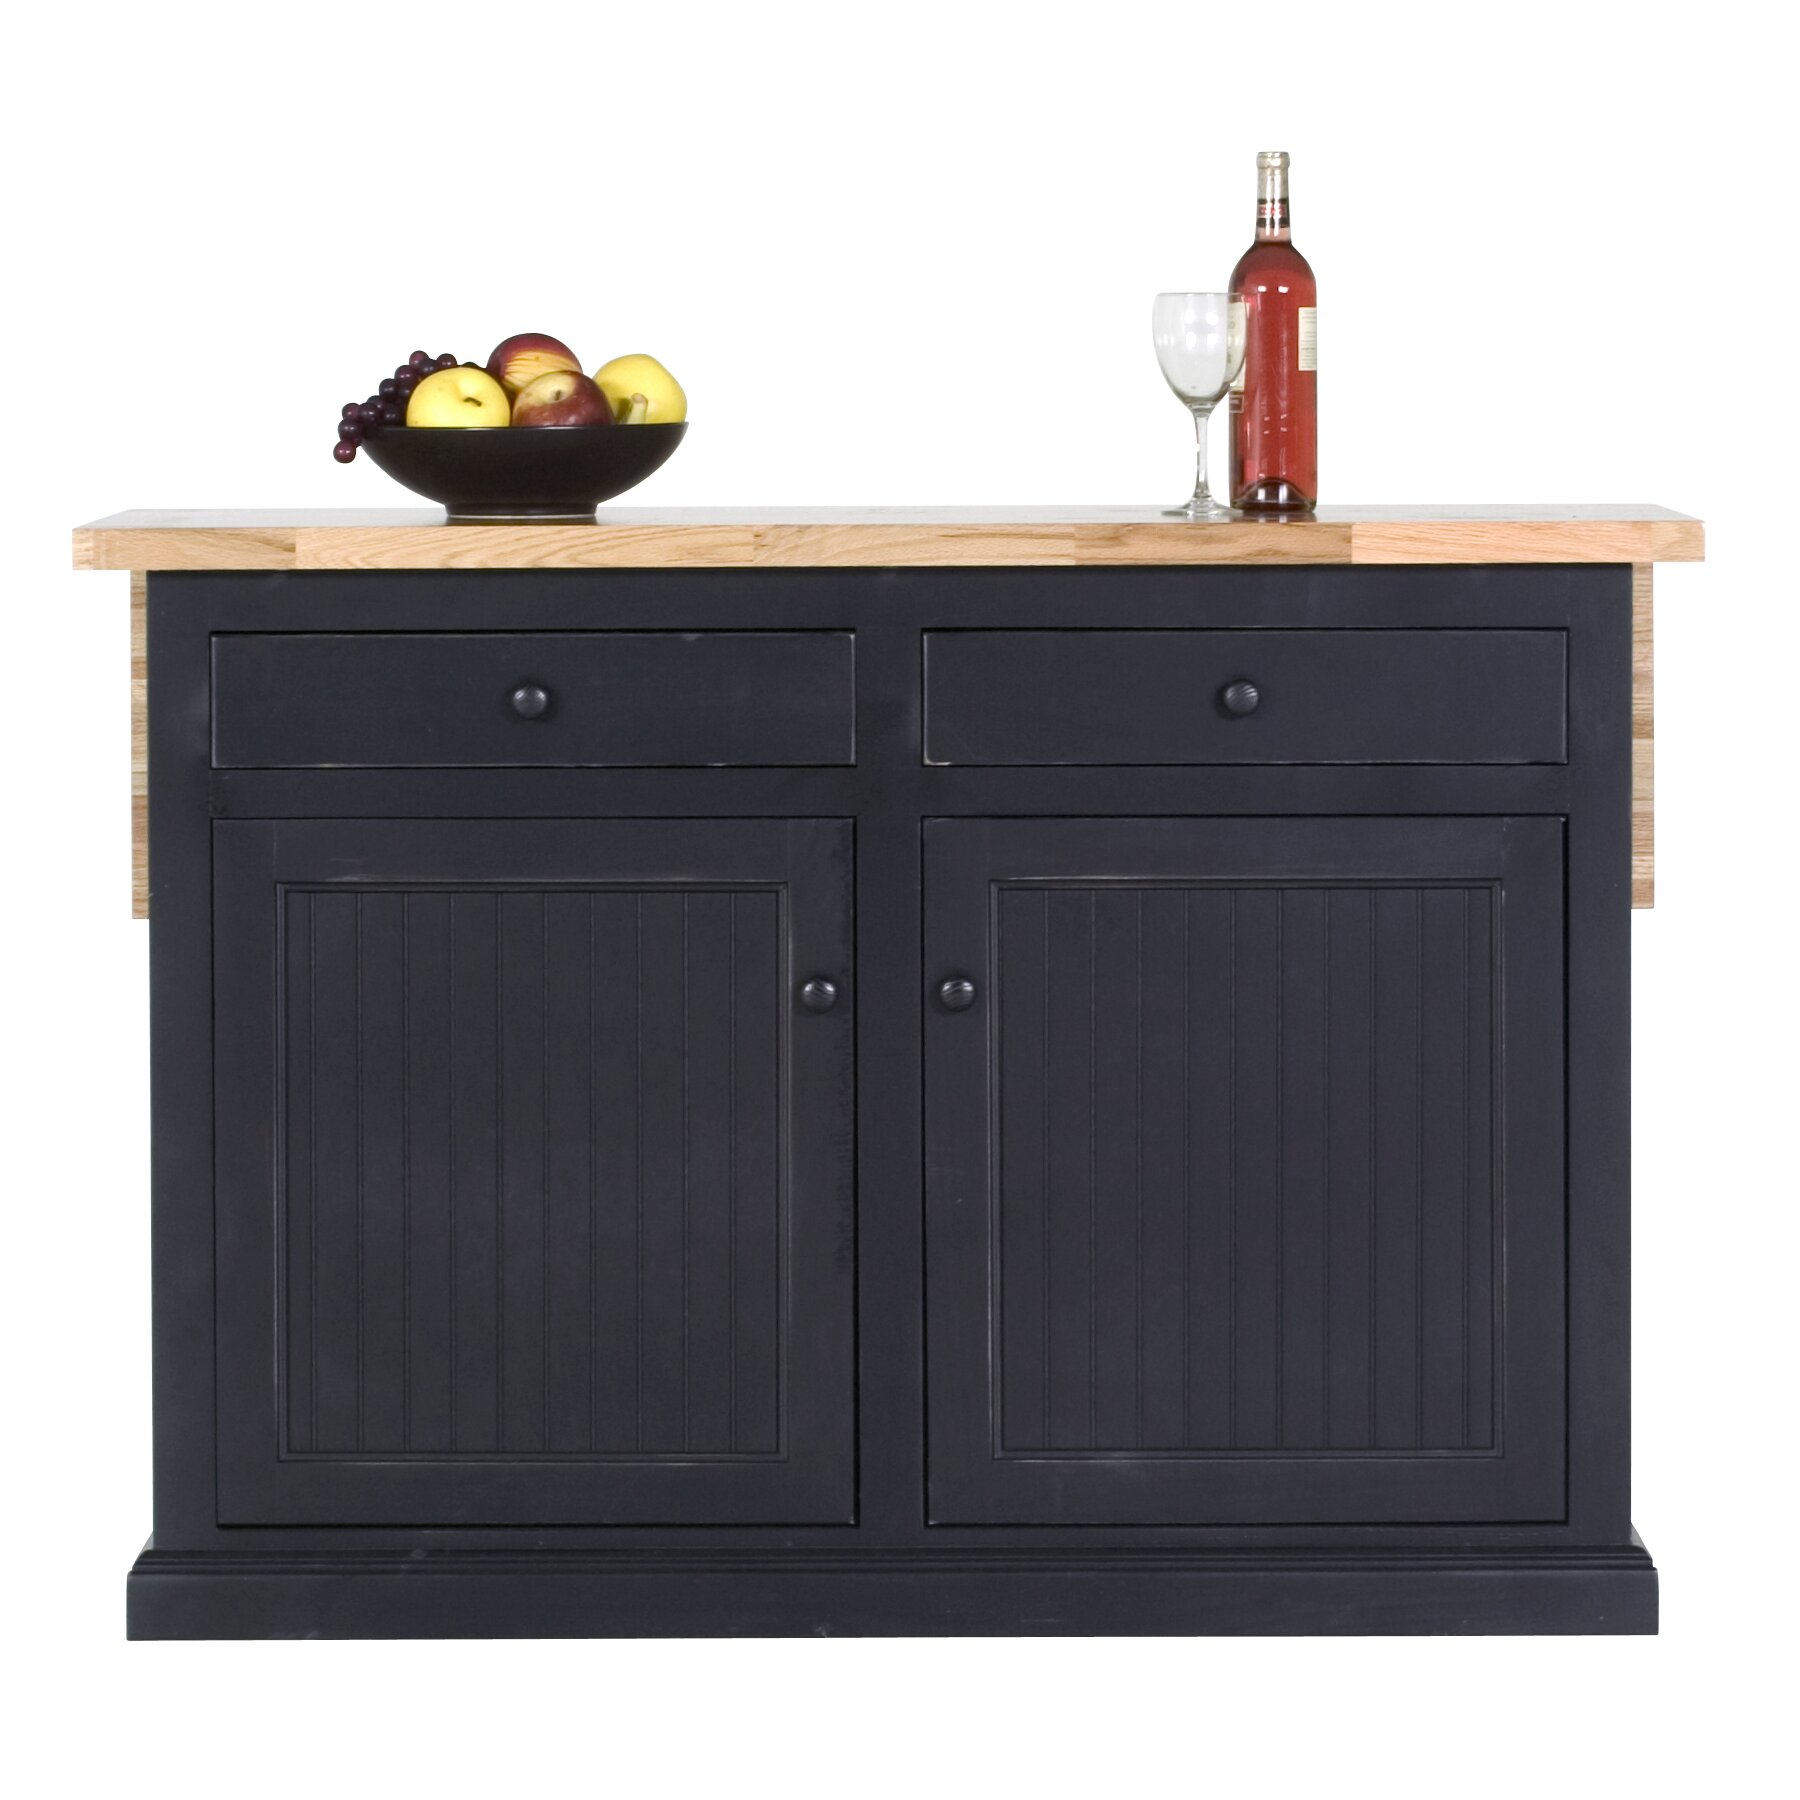 Butcher Block Kitchen Island Breakwater Bay Meredith Kitchen Island With Butcher Block Top